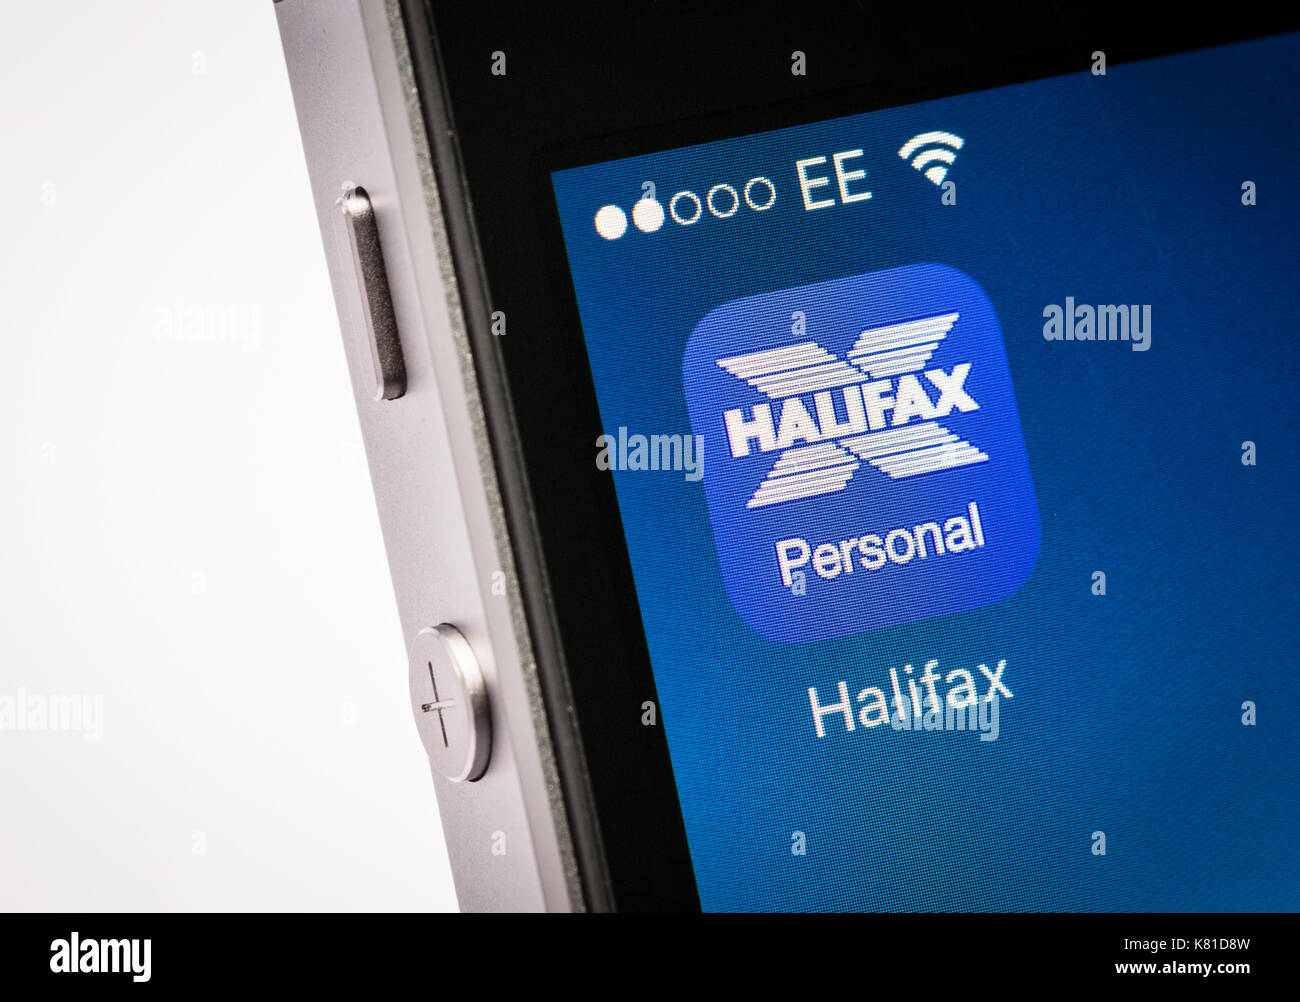 Halifax mobile banking app on an iPhone mobile phone - Stock Image